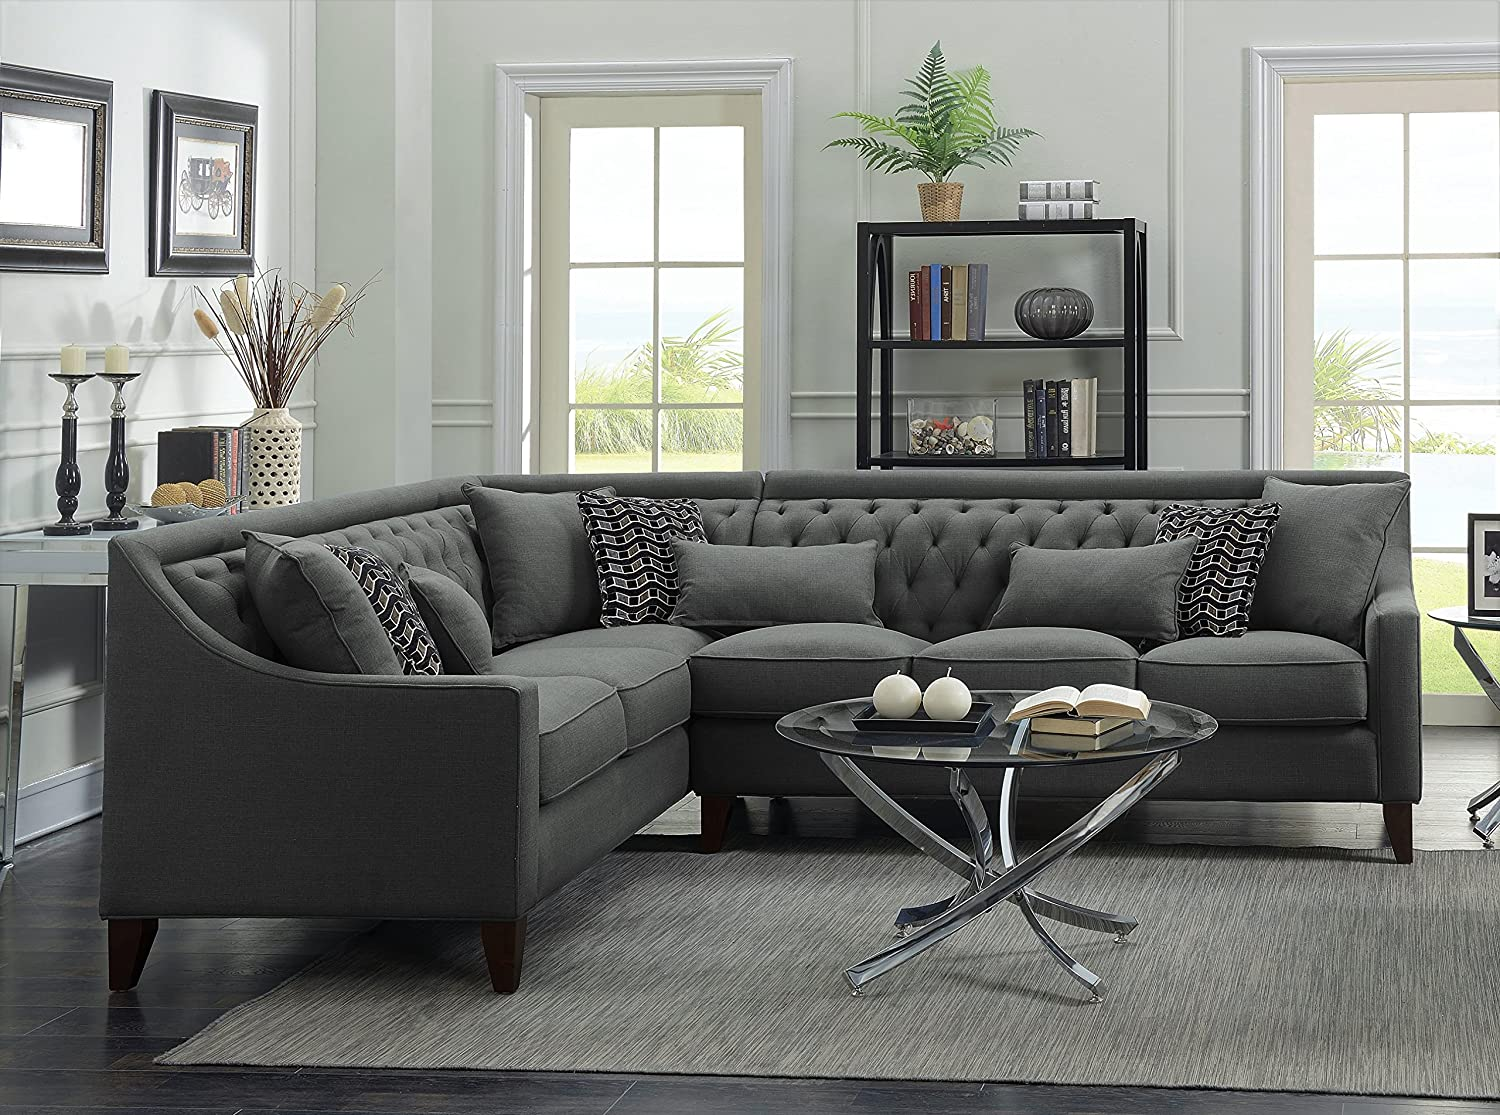 Iconic Home Chic Home Aberdeen Linen Tufted Down Mix Modern Contemporary Left Facing Sectional Sofa Grey Furniture Decor